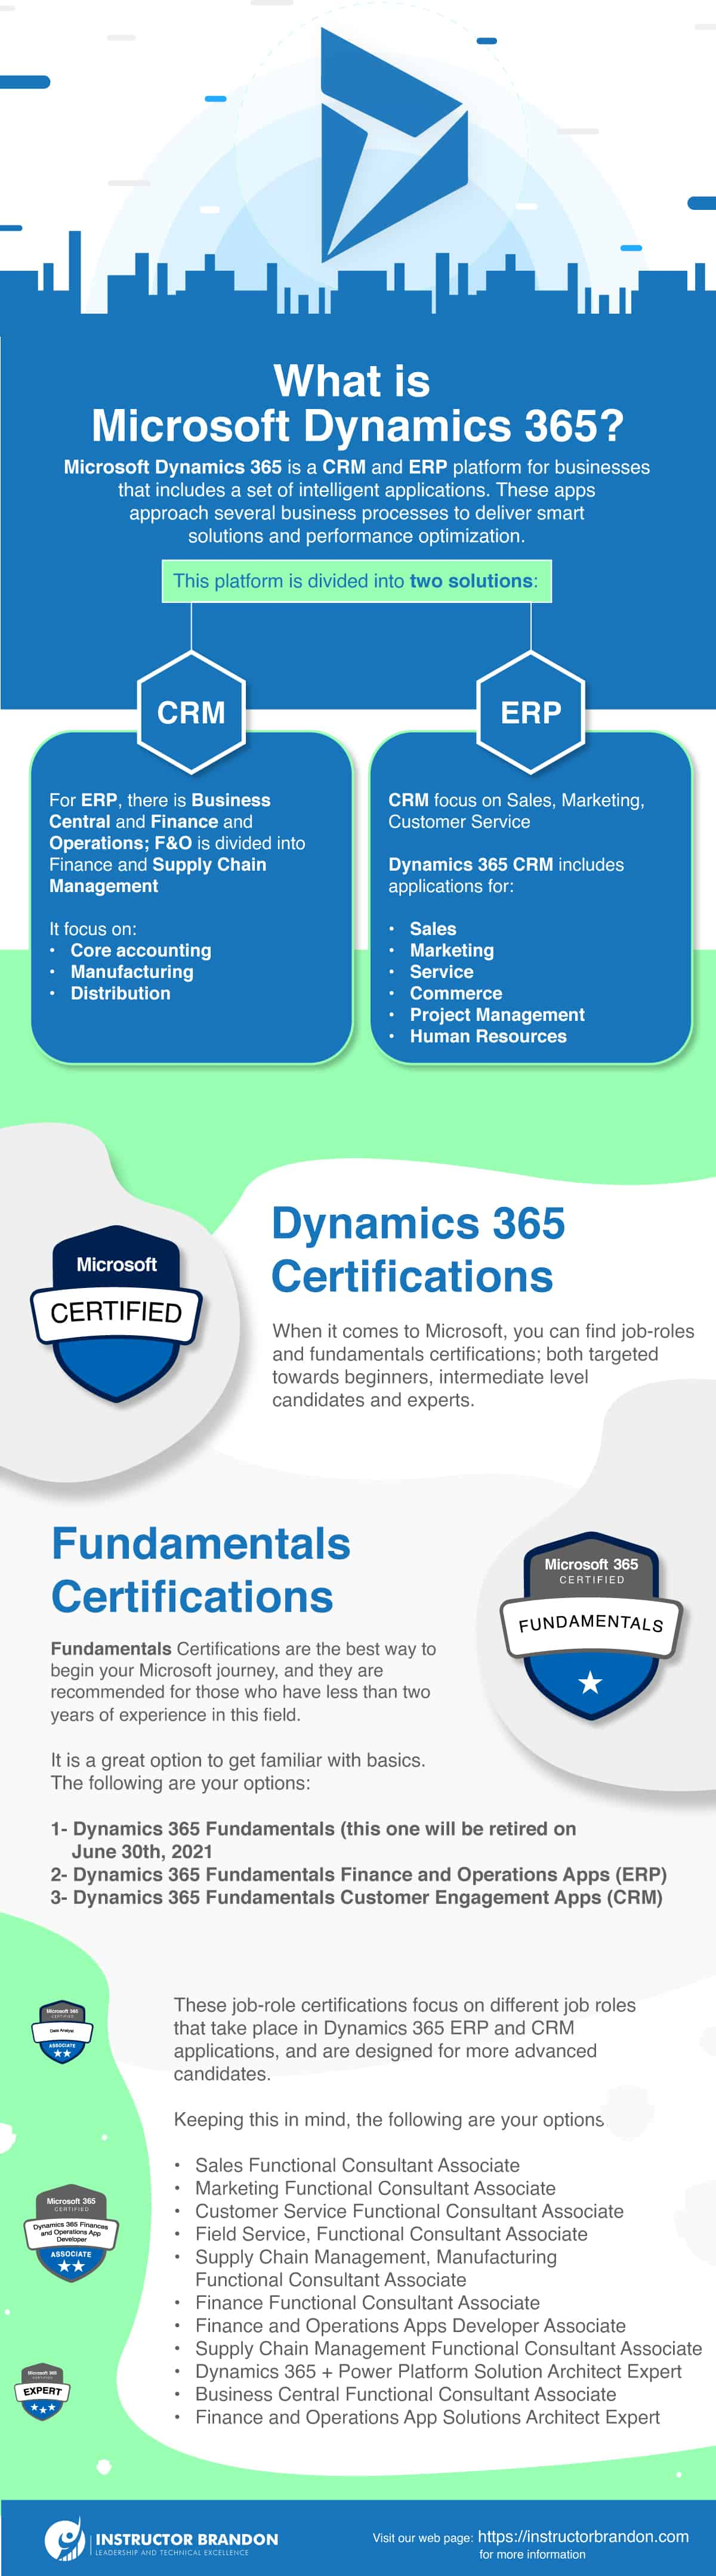 Microsoft Dynamics 365 Certifications